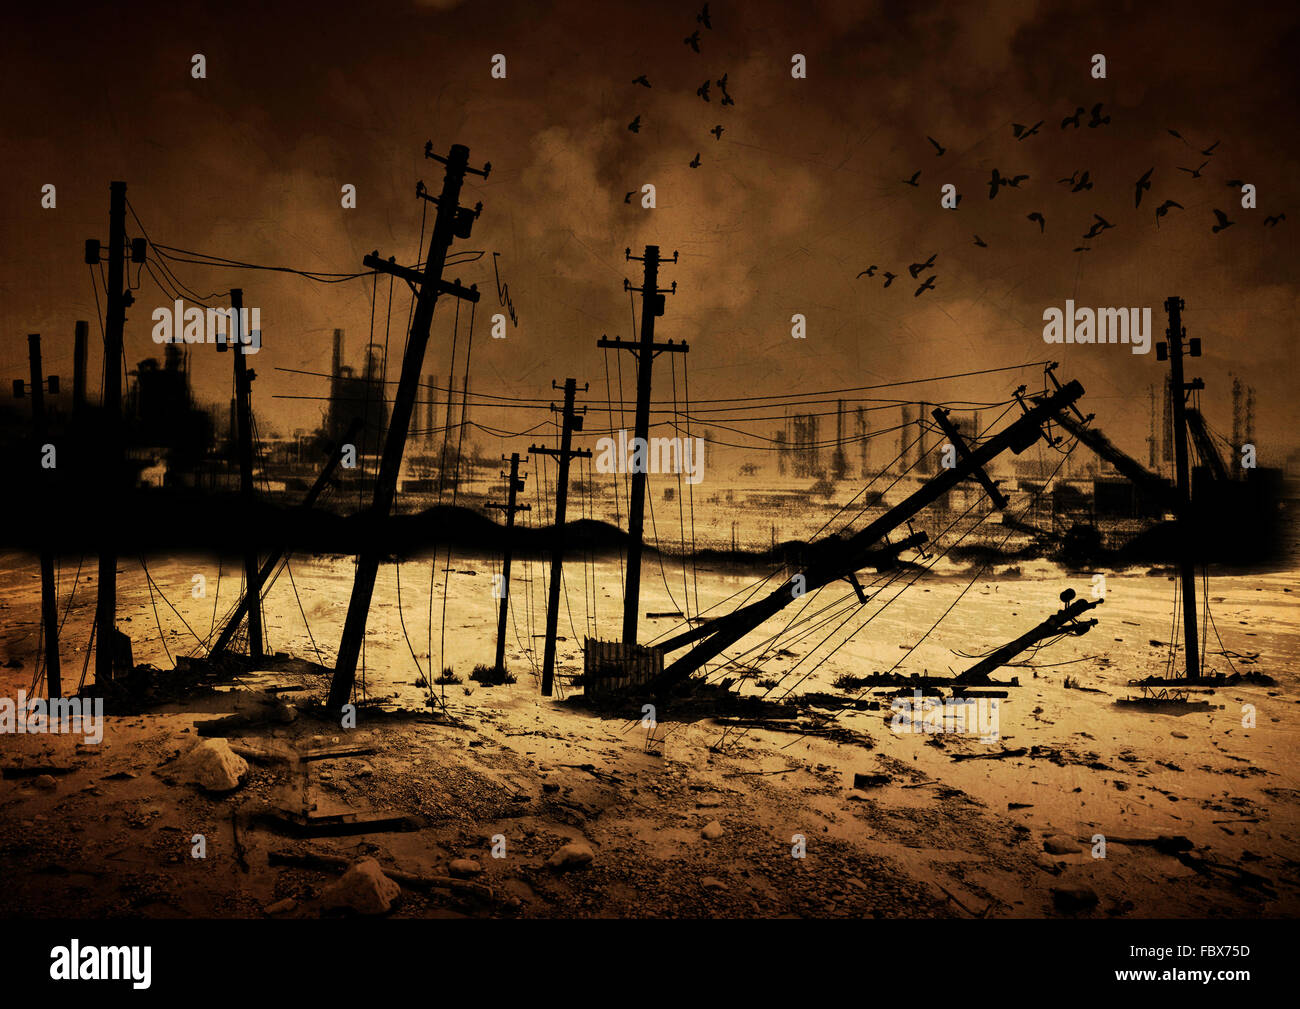 Background Post Apocalypse V2 - Stock Image